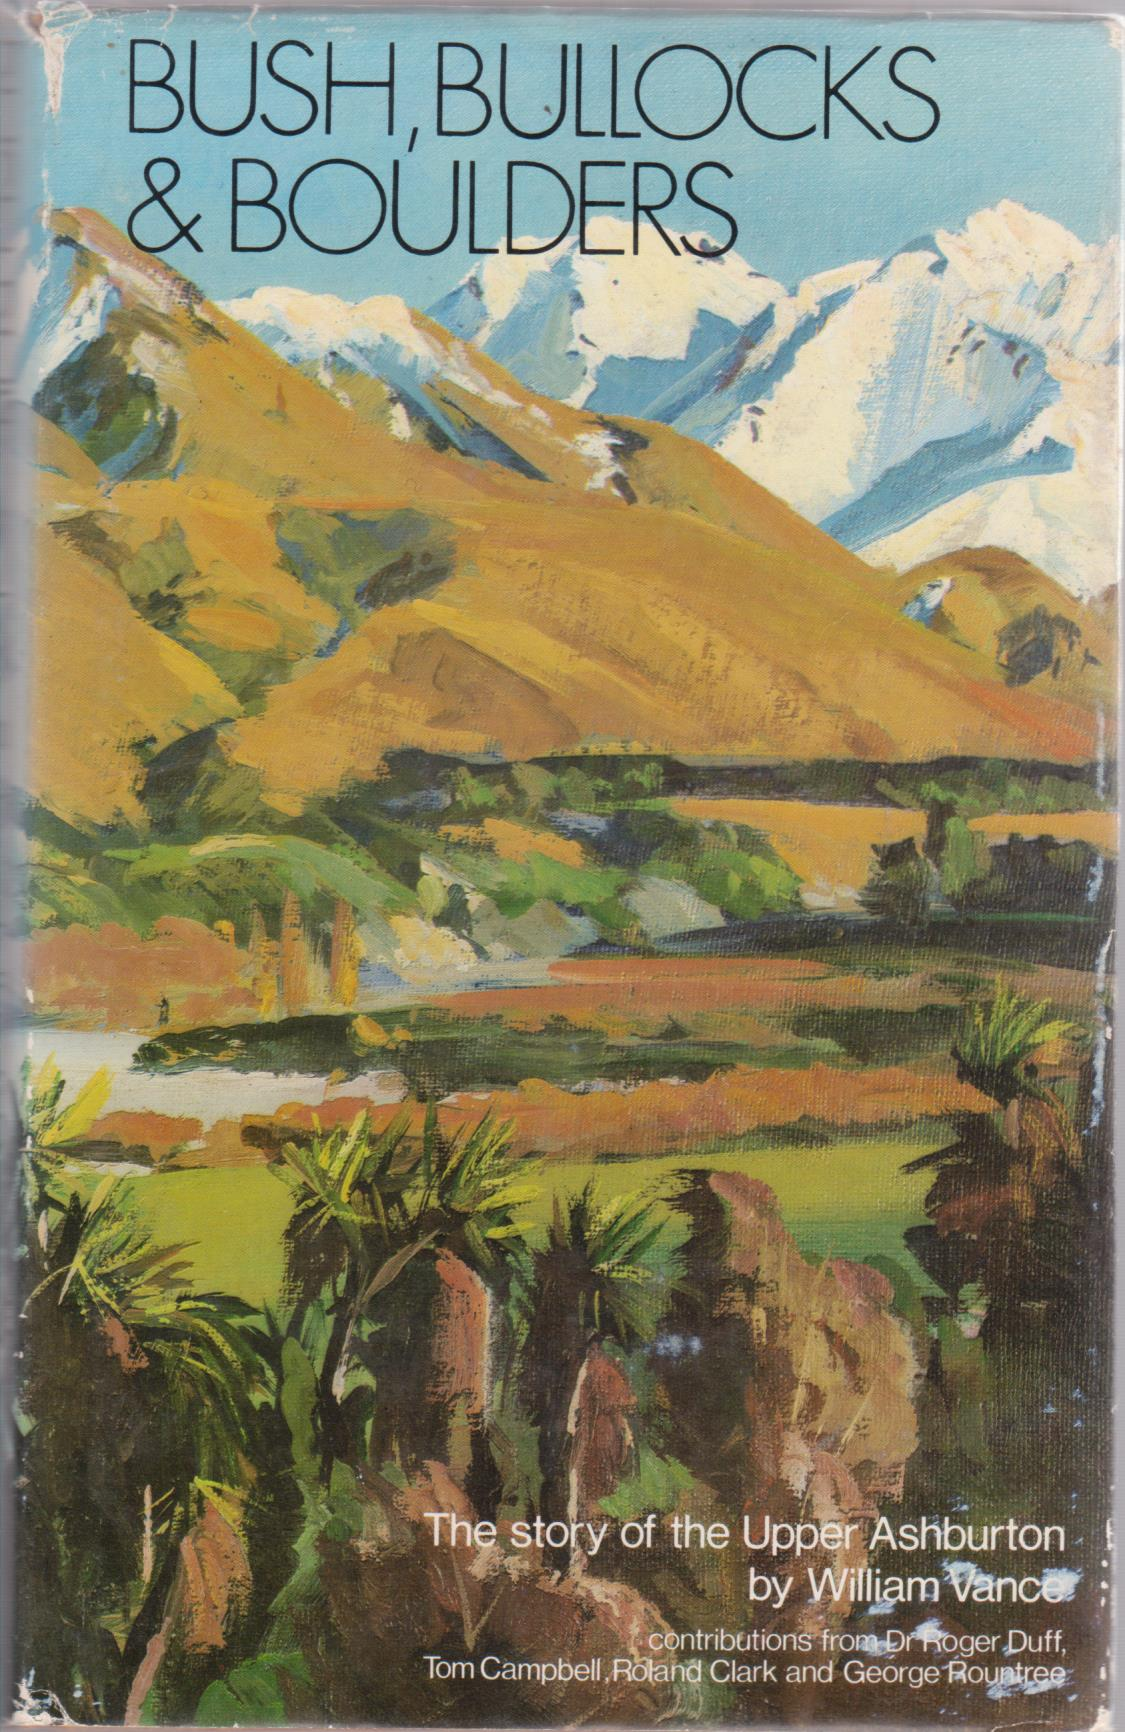 cover image of Bush Bullocks and Boulders The Story of the Upper Ashburton for sale in New Zealand